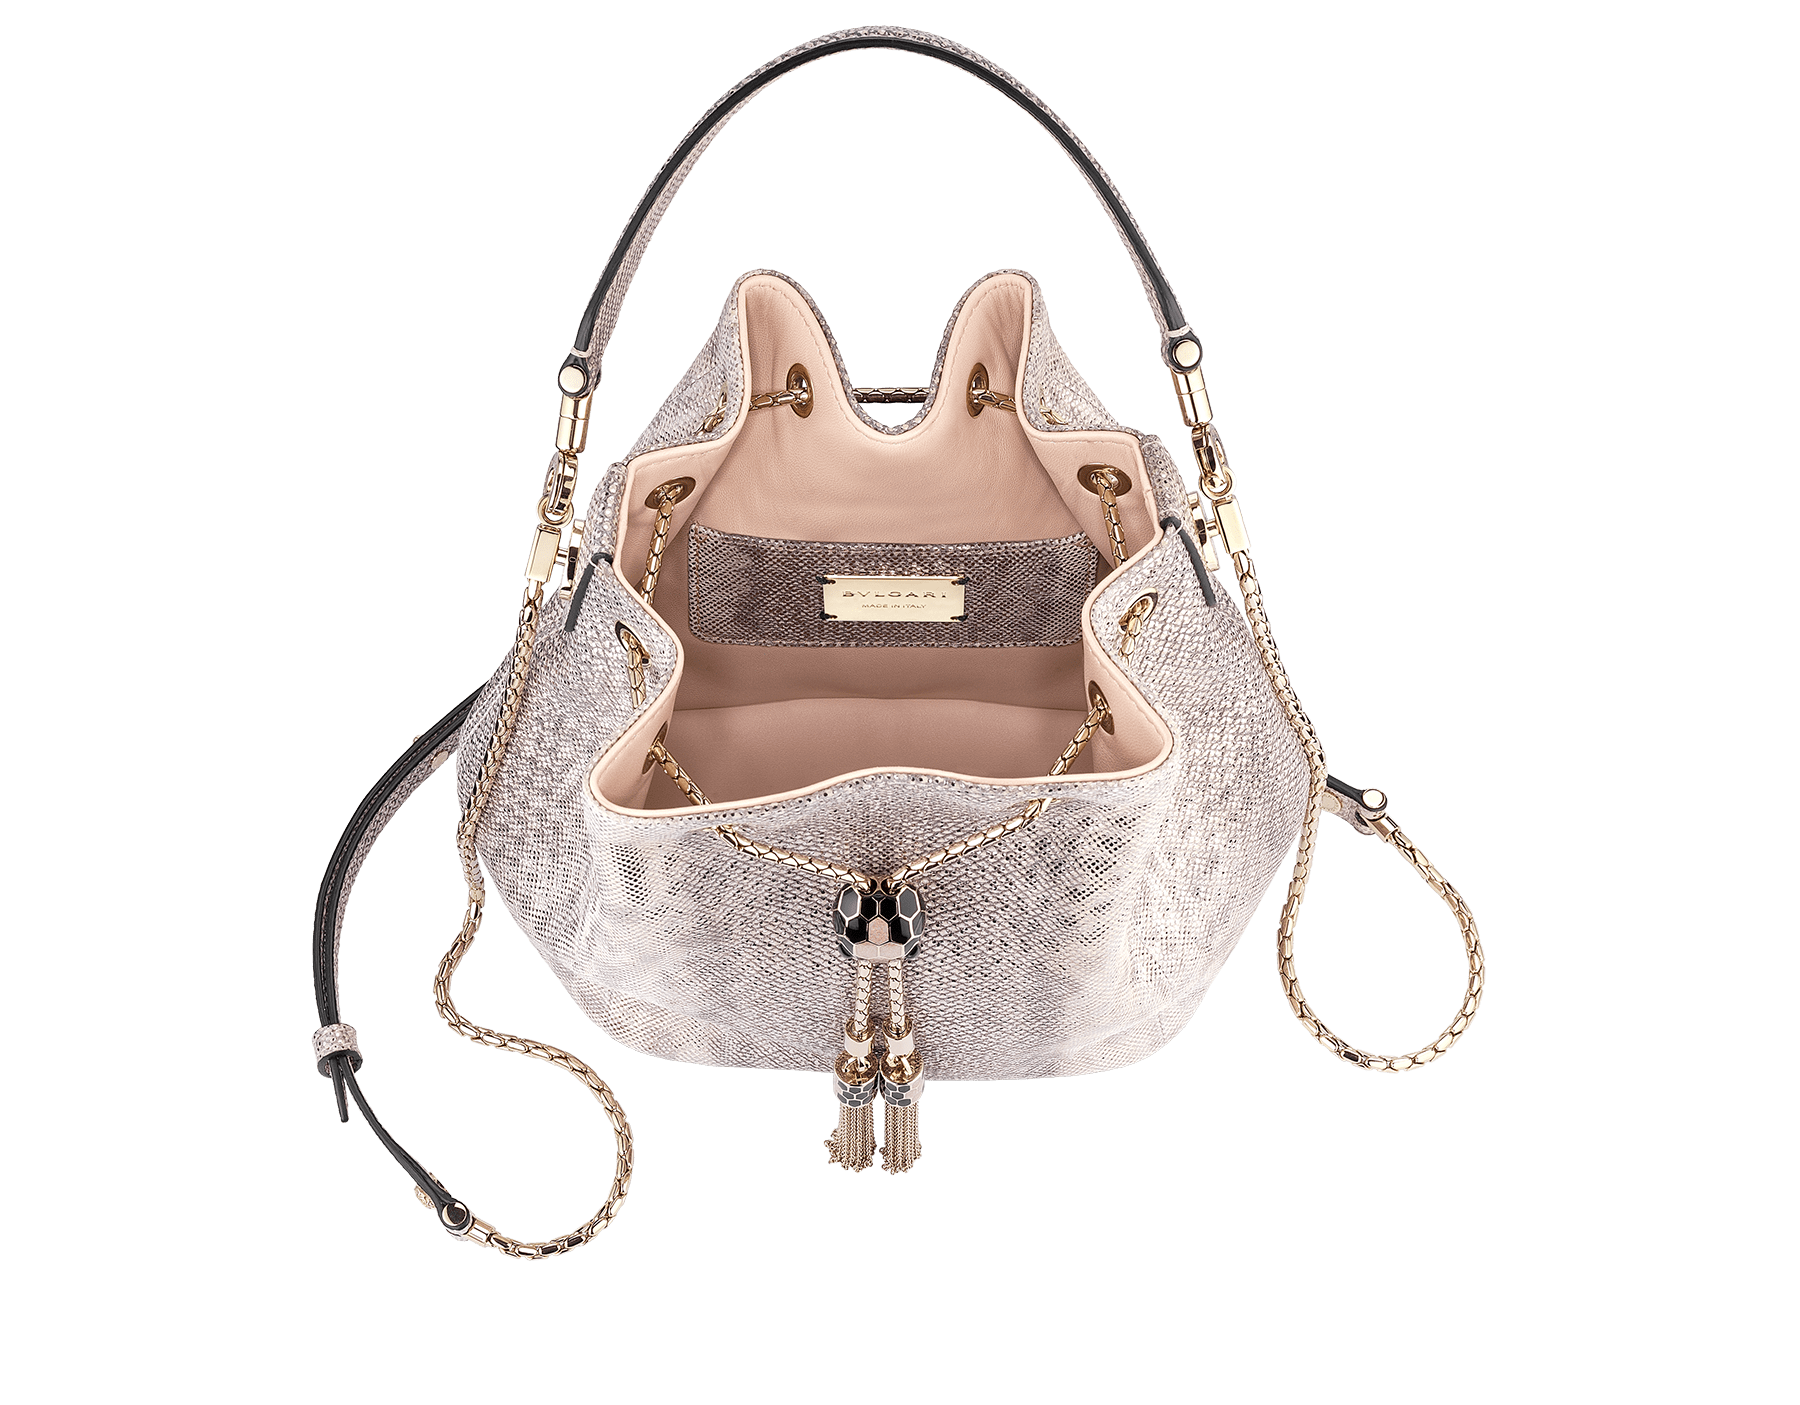 Bucket Serpenti Forever in crystal rose metallic karung skin and crystal rose nappa internal lining. Hardware in light gold plated brass and snakehead closure in black and glitter rose gold enamel, with eyes in black onyx 287614 image 2